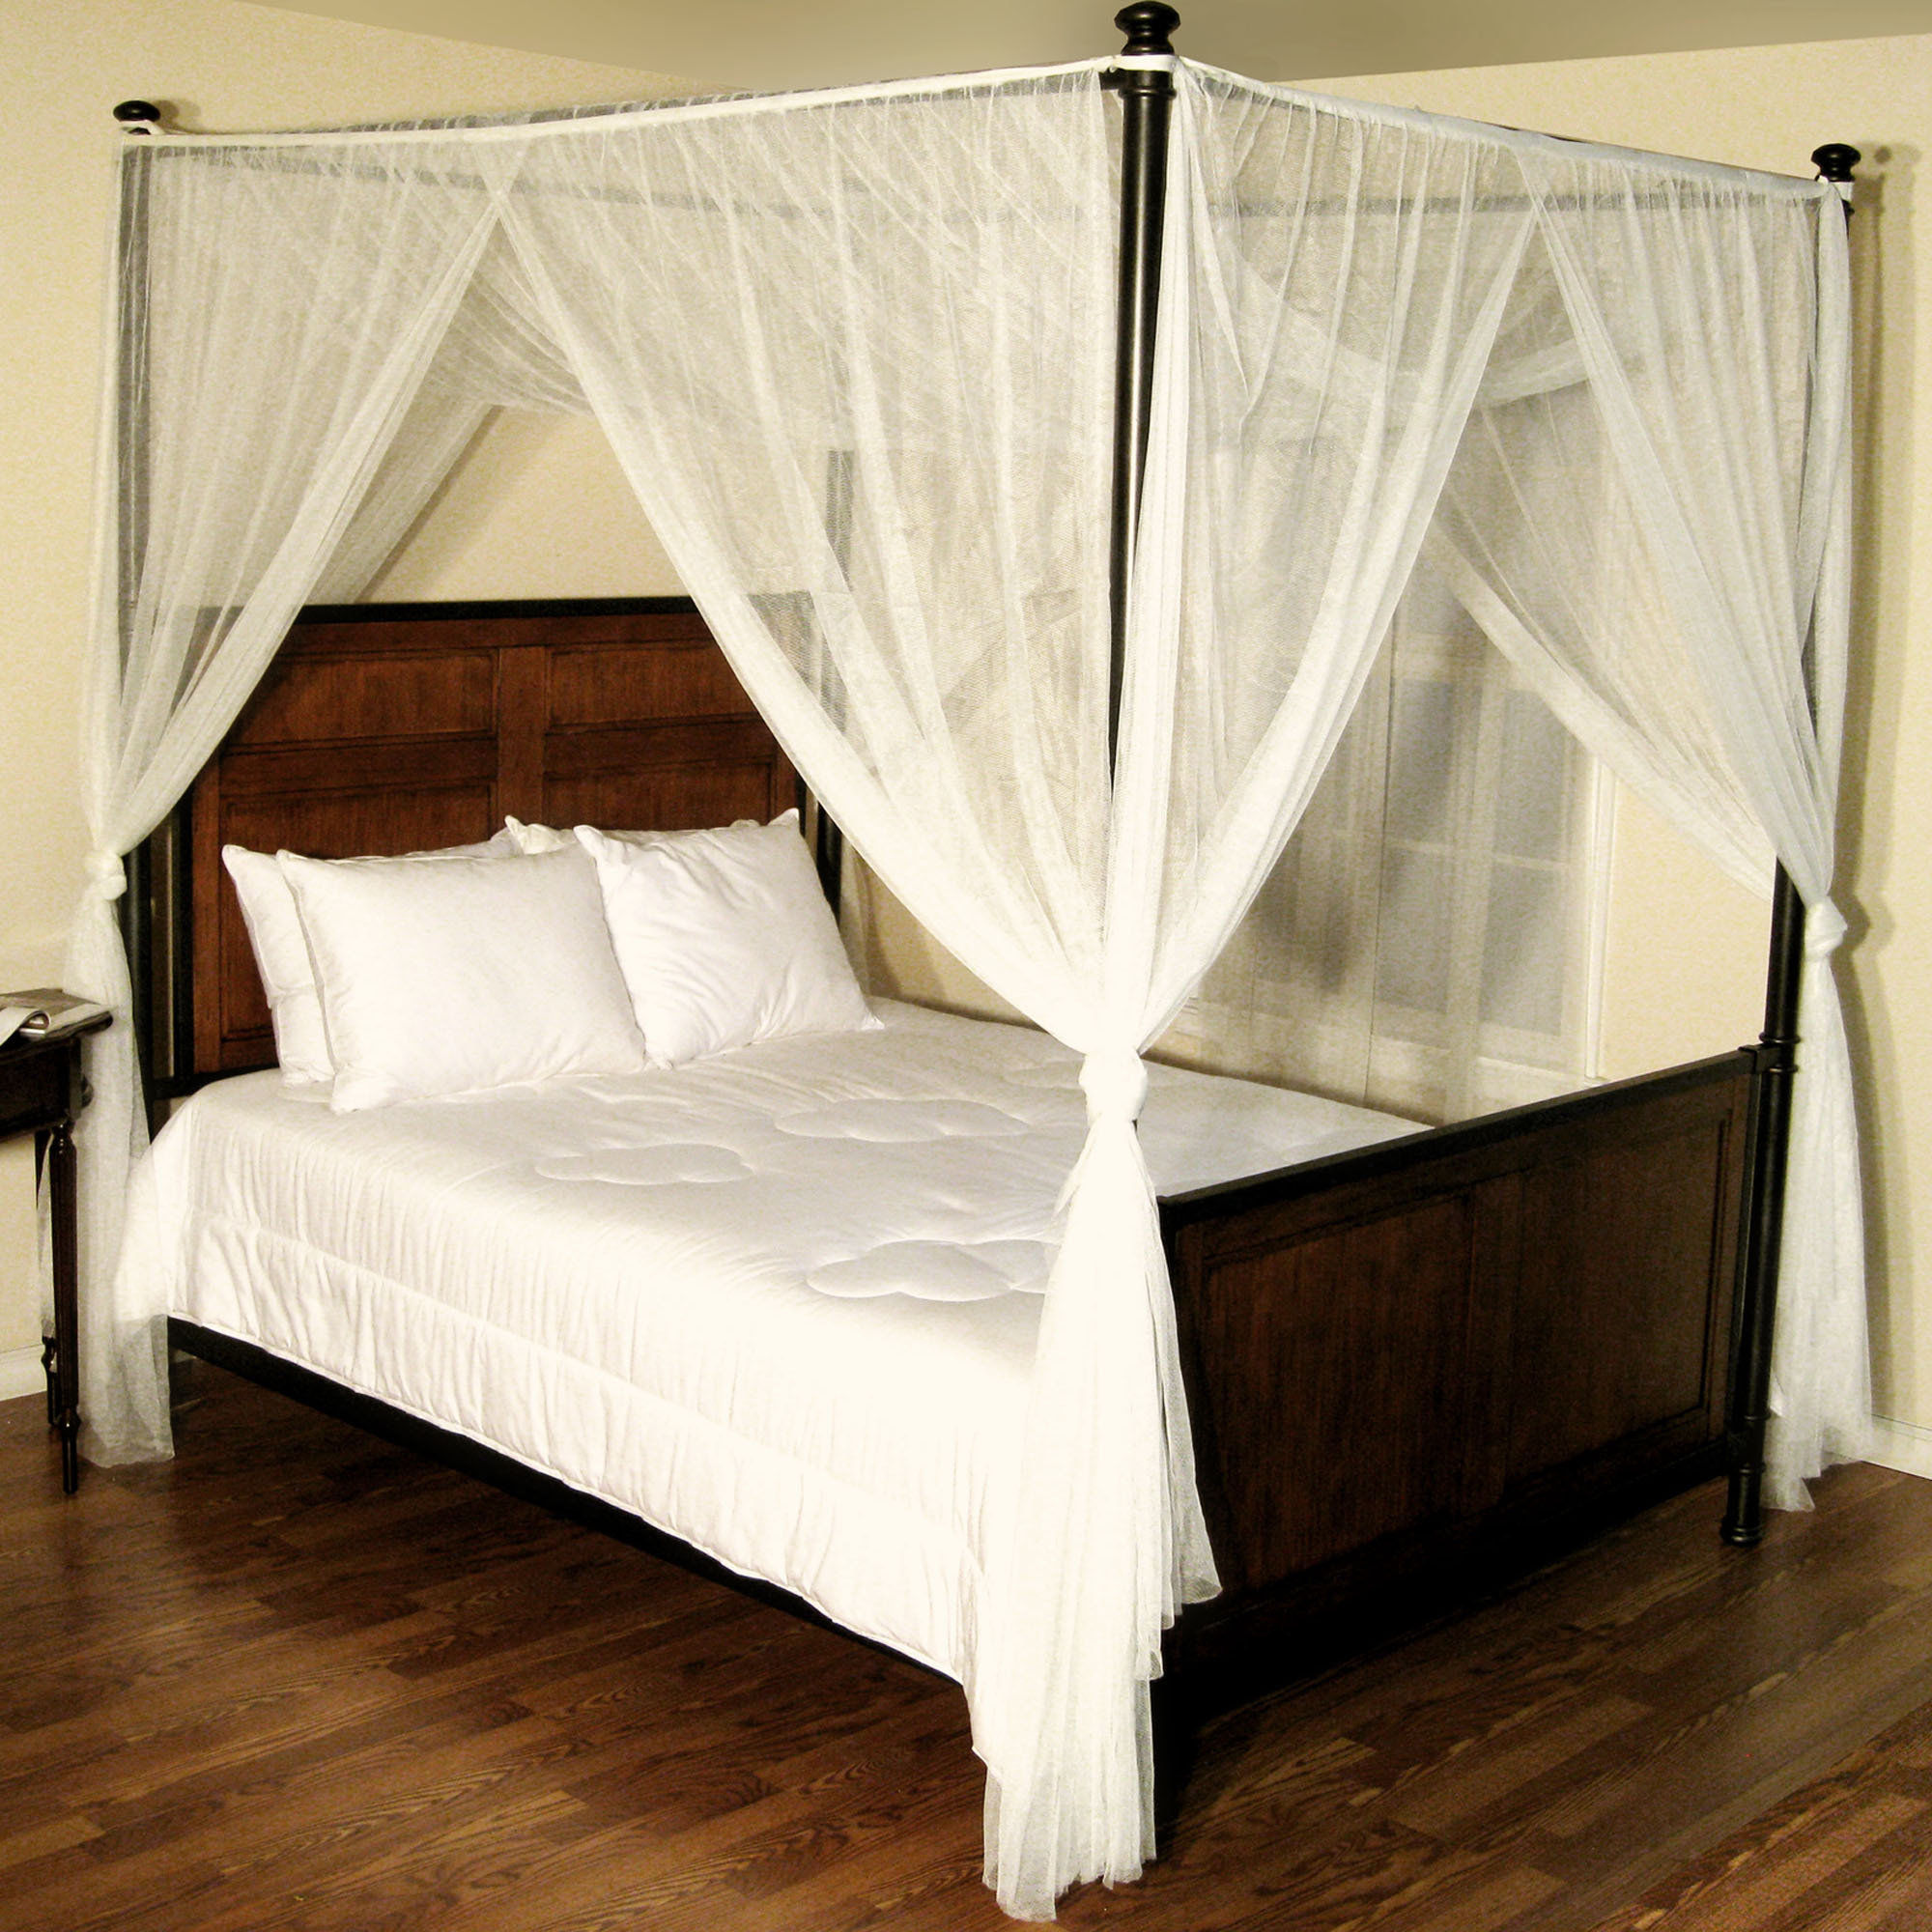 Curtains Canopy Bed For